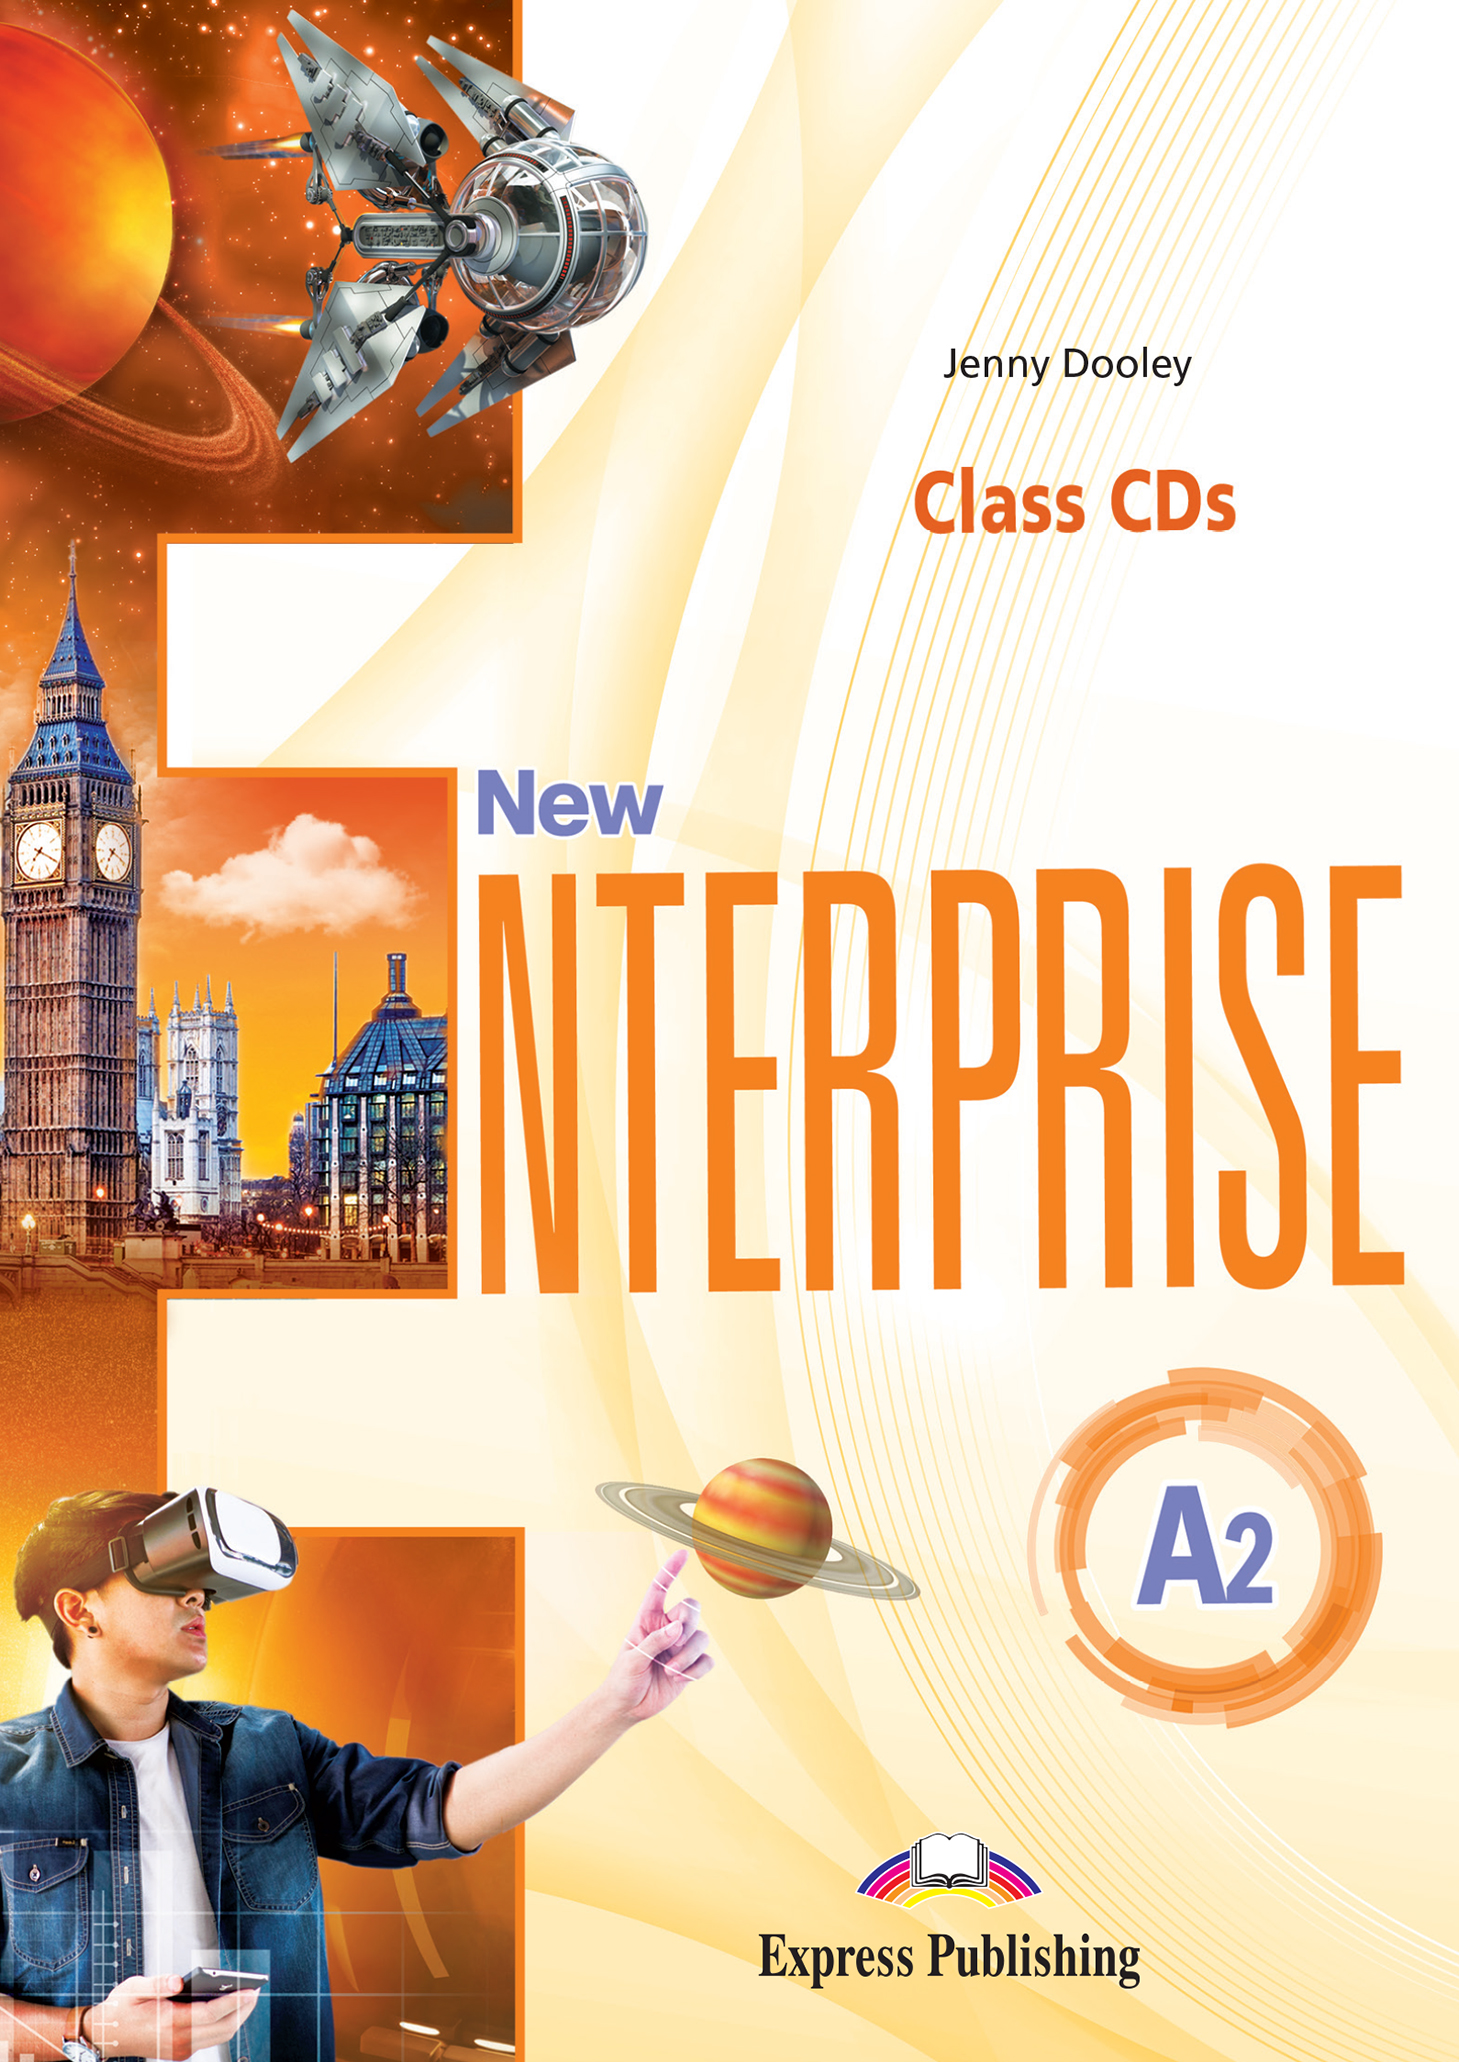 New Enterprise A2 - Class CDs (set of 3)